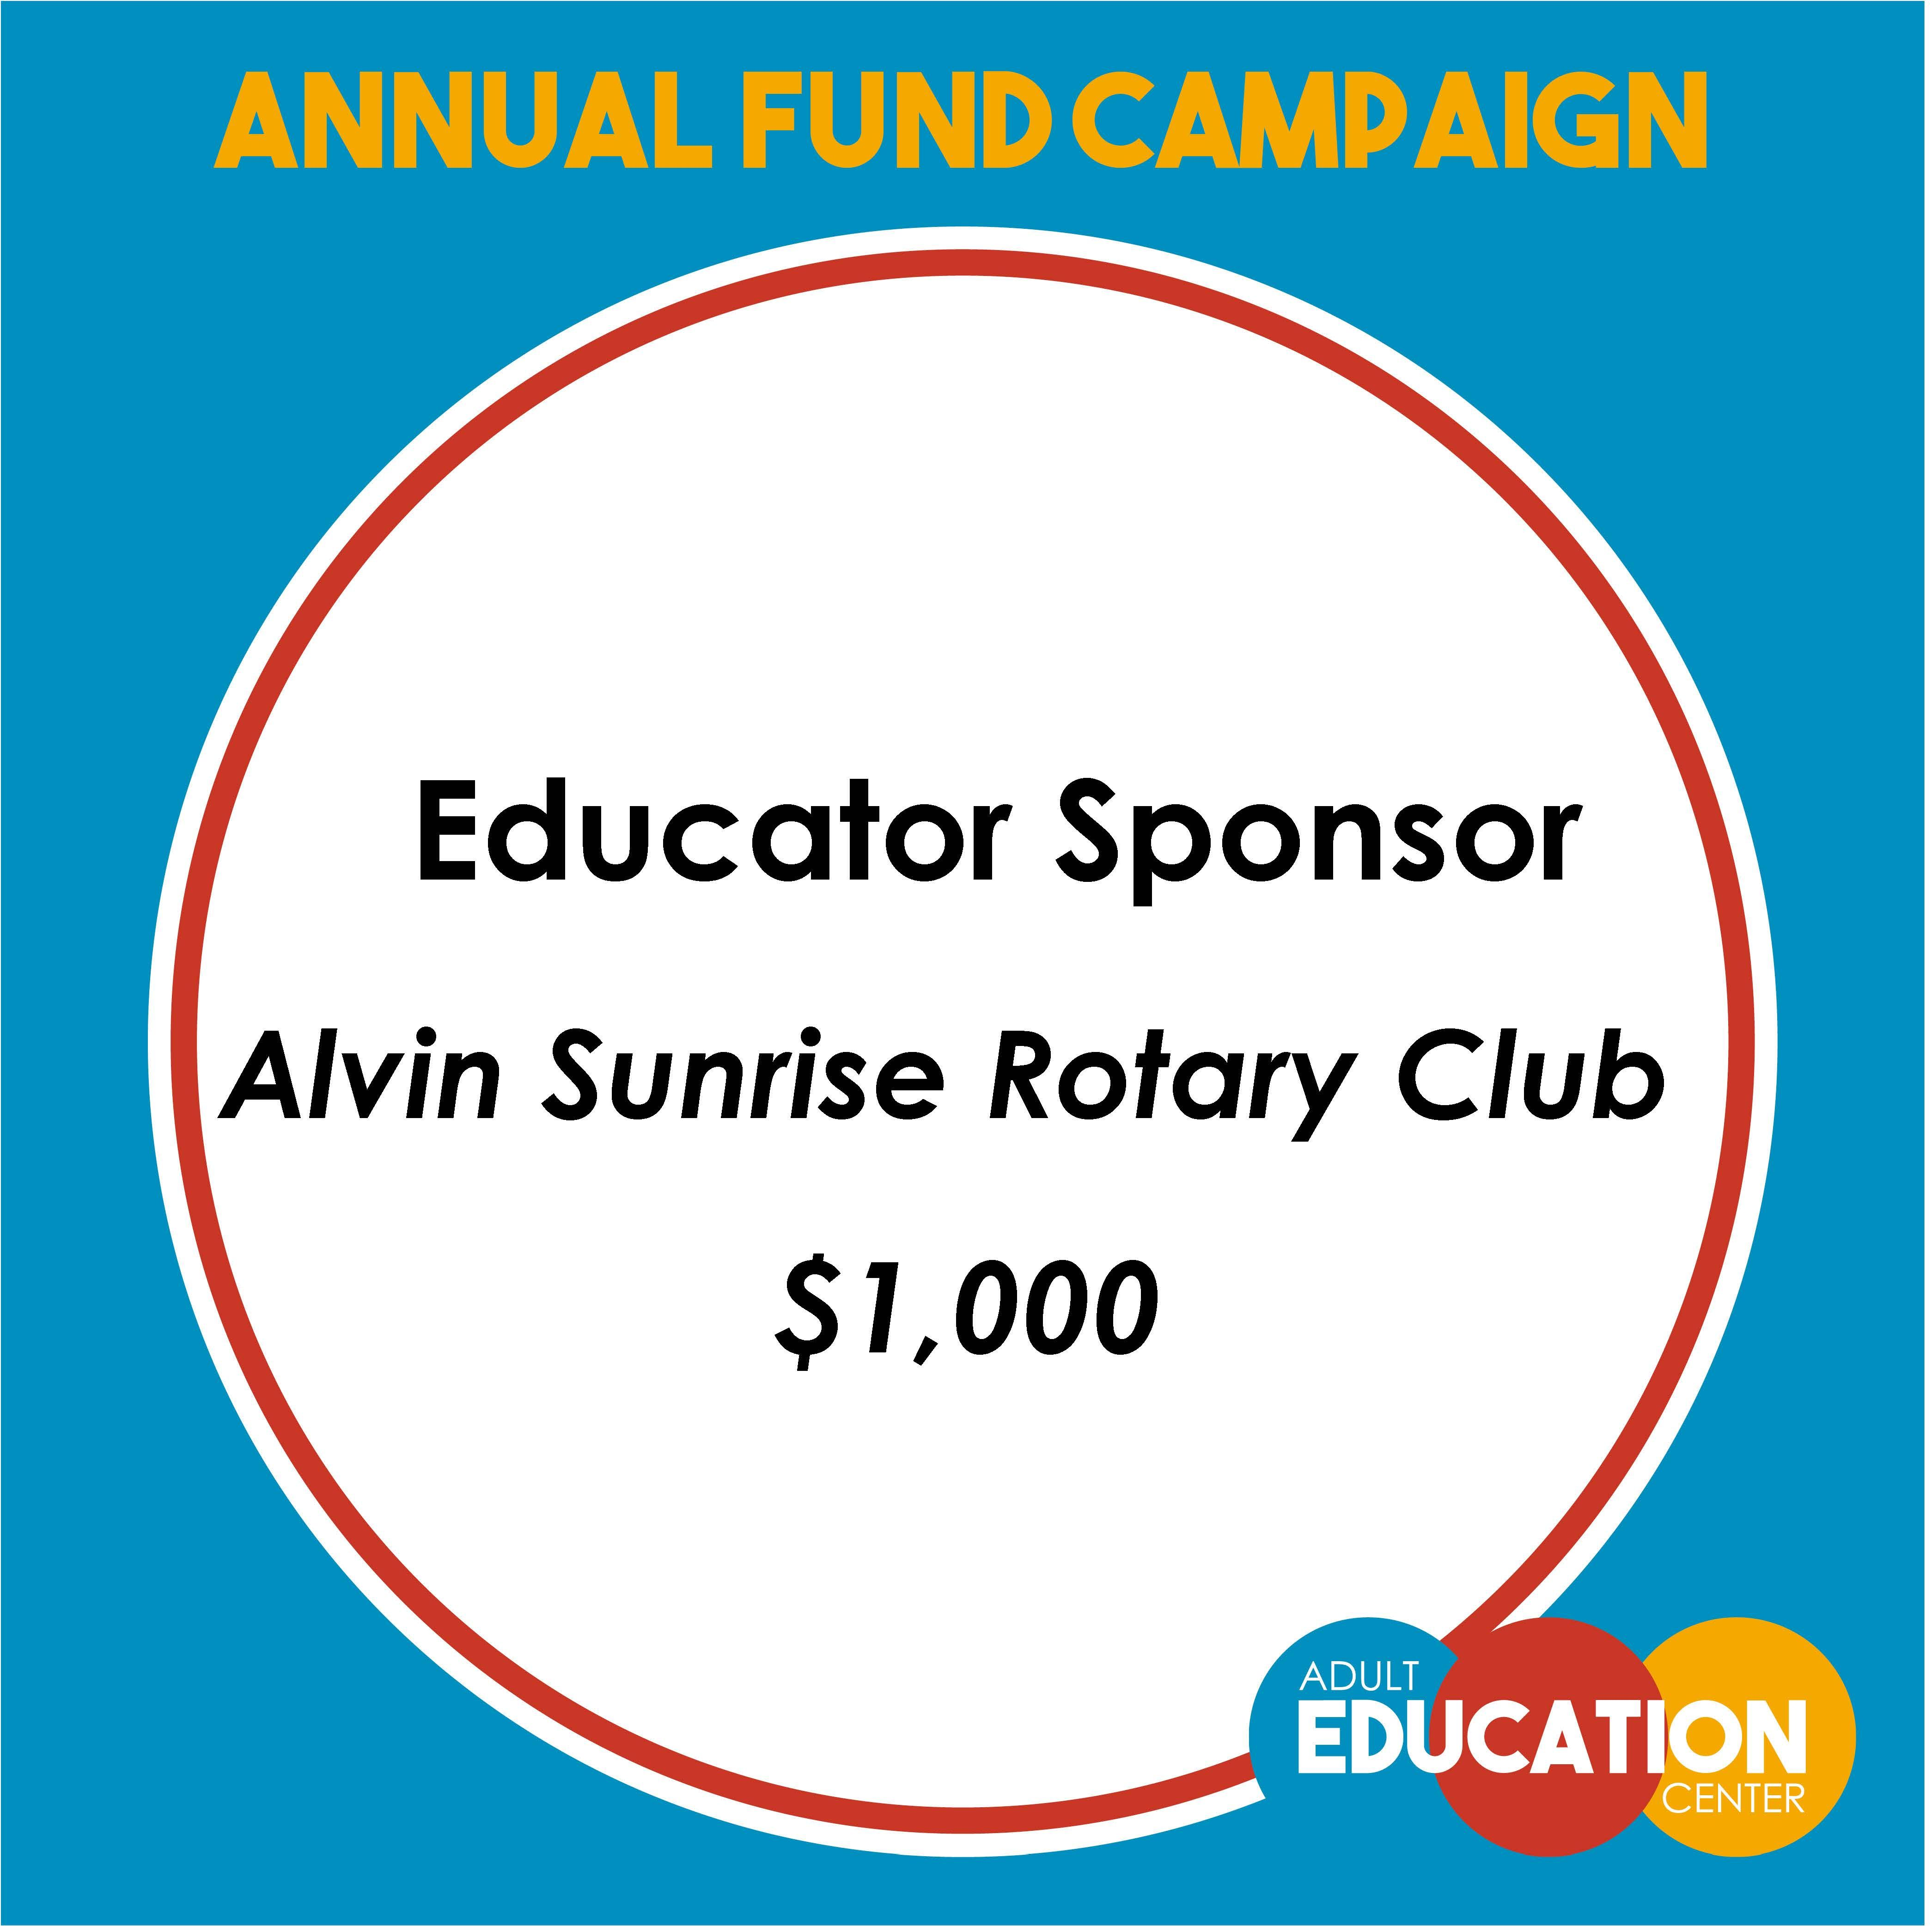 Alvin Sunrise Rotary Club  Educator Sponsor - $1,000